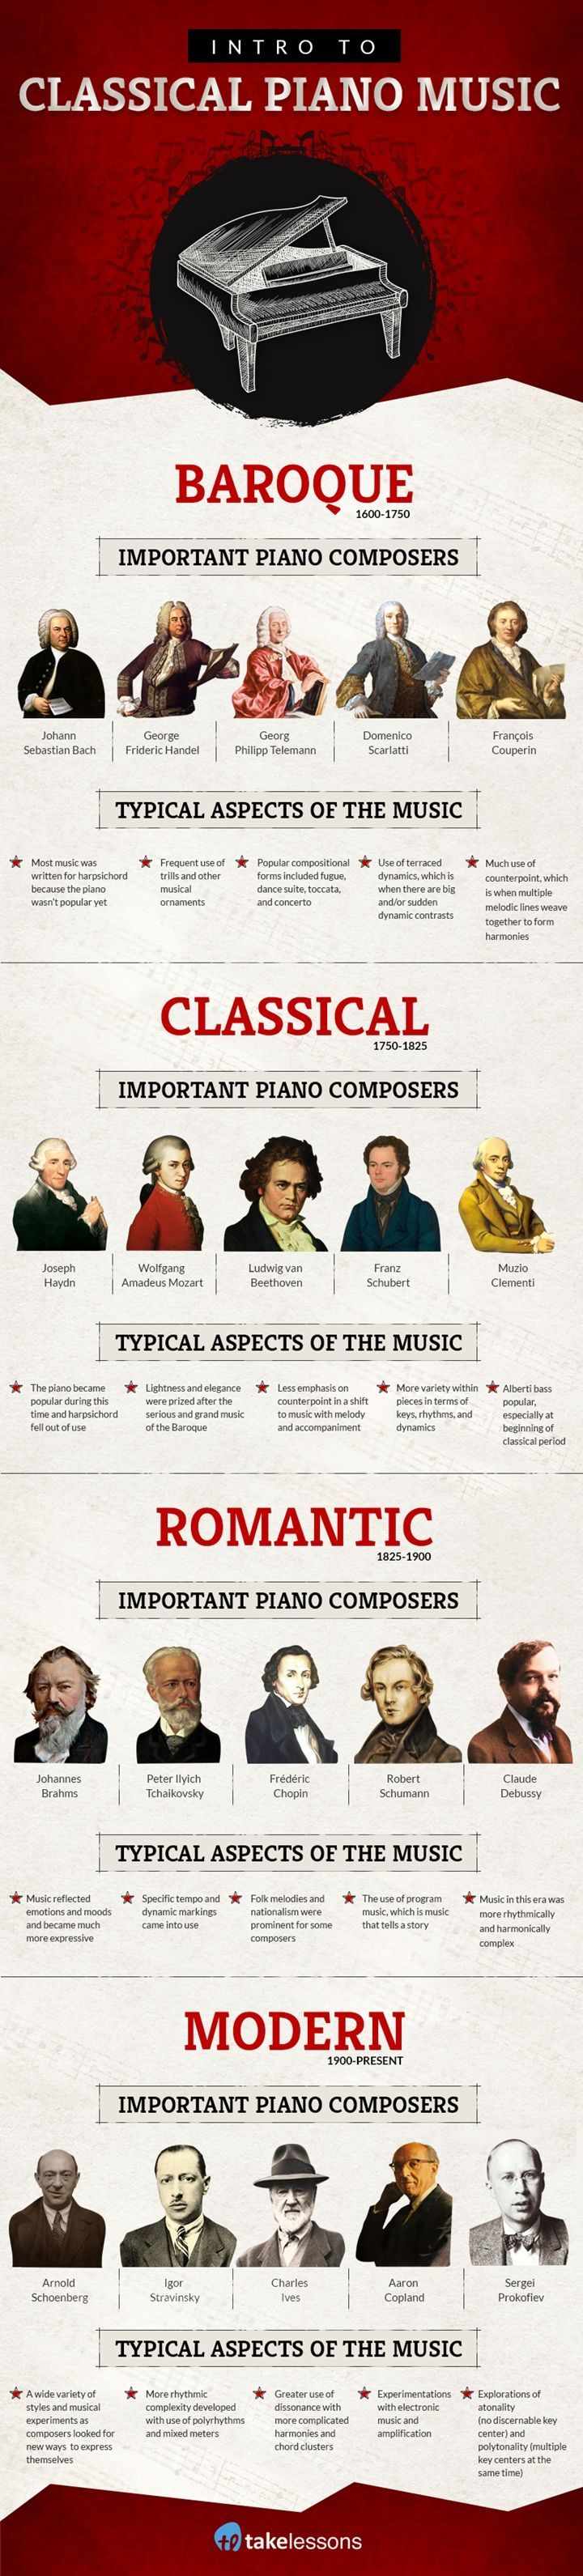 Intro to Classical Piano Styles - Infographic